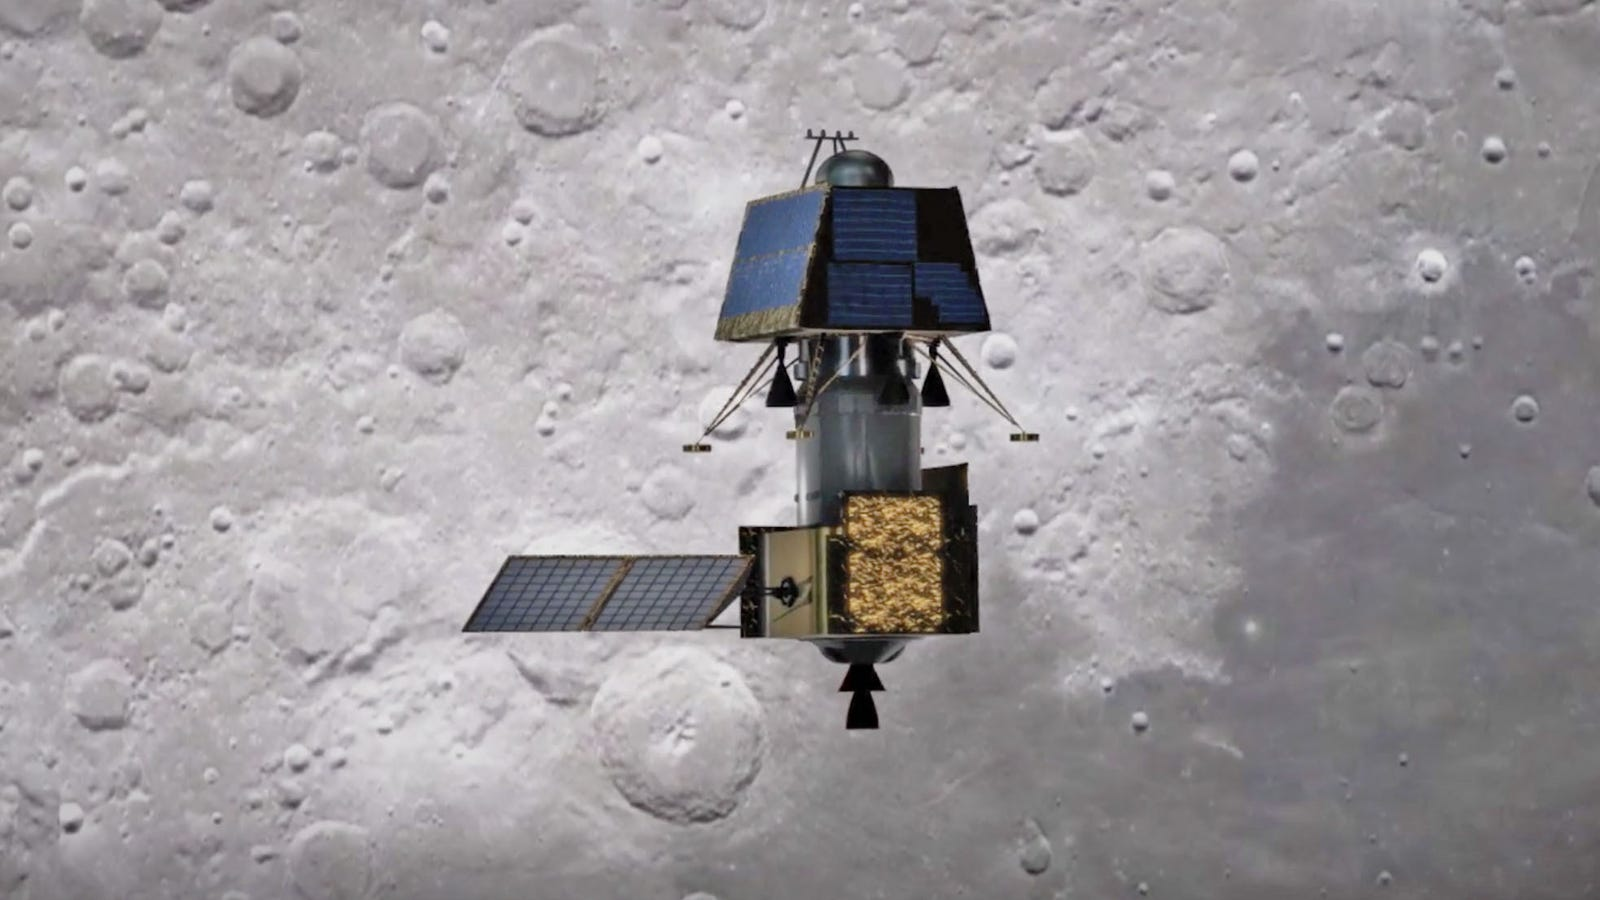 Watch Live as India Attempts to Land Its Vikram Probe on the Moon